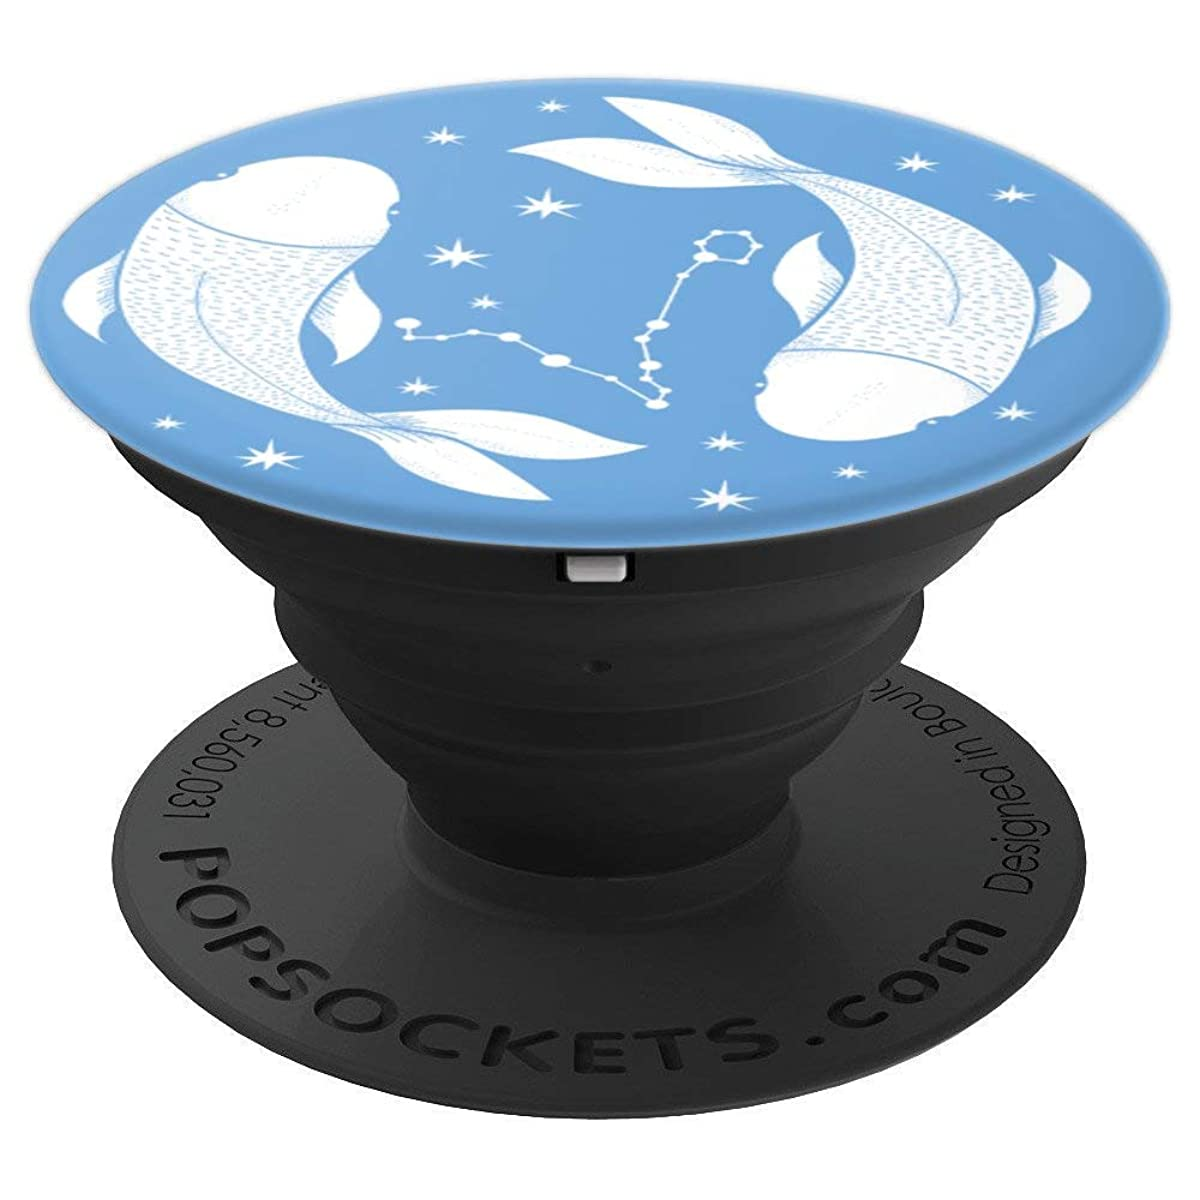 Pisces Star Sign Astrology Zodiac Astronomy Pop Socket - PopSockets Grip and Stand for Phones and Tablets